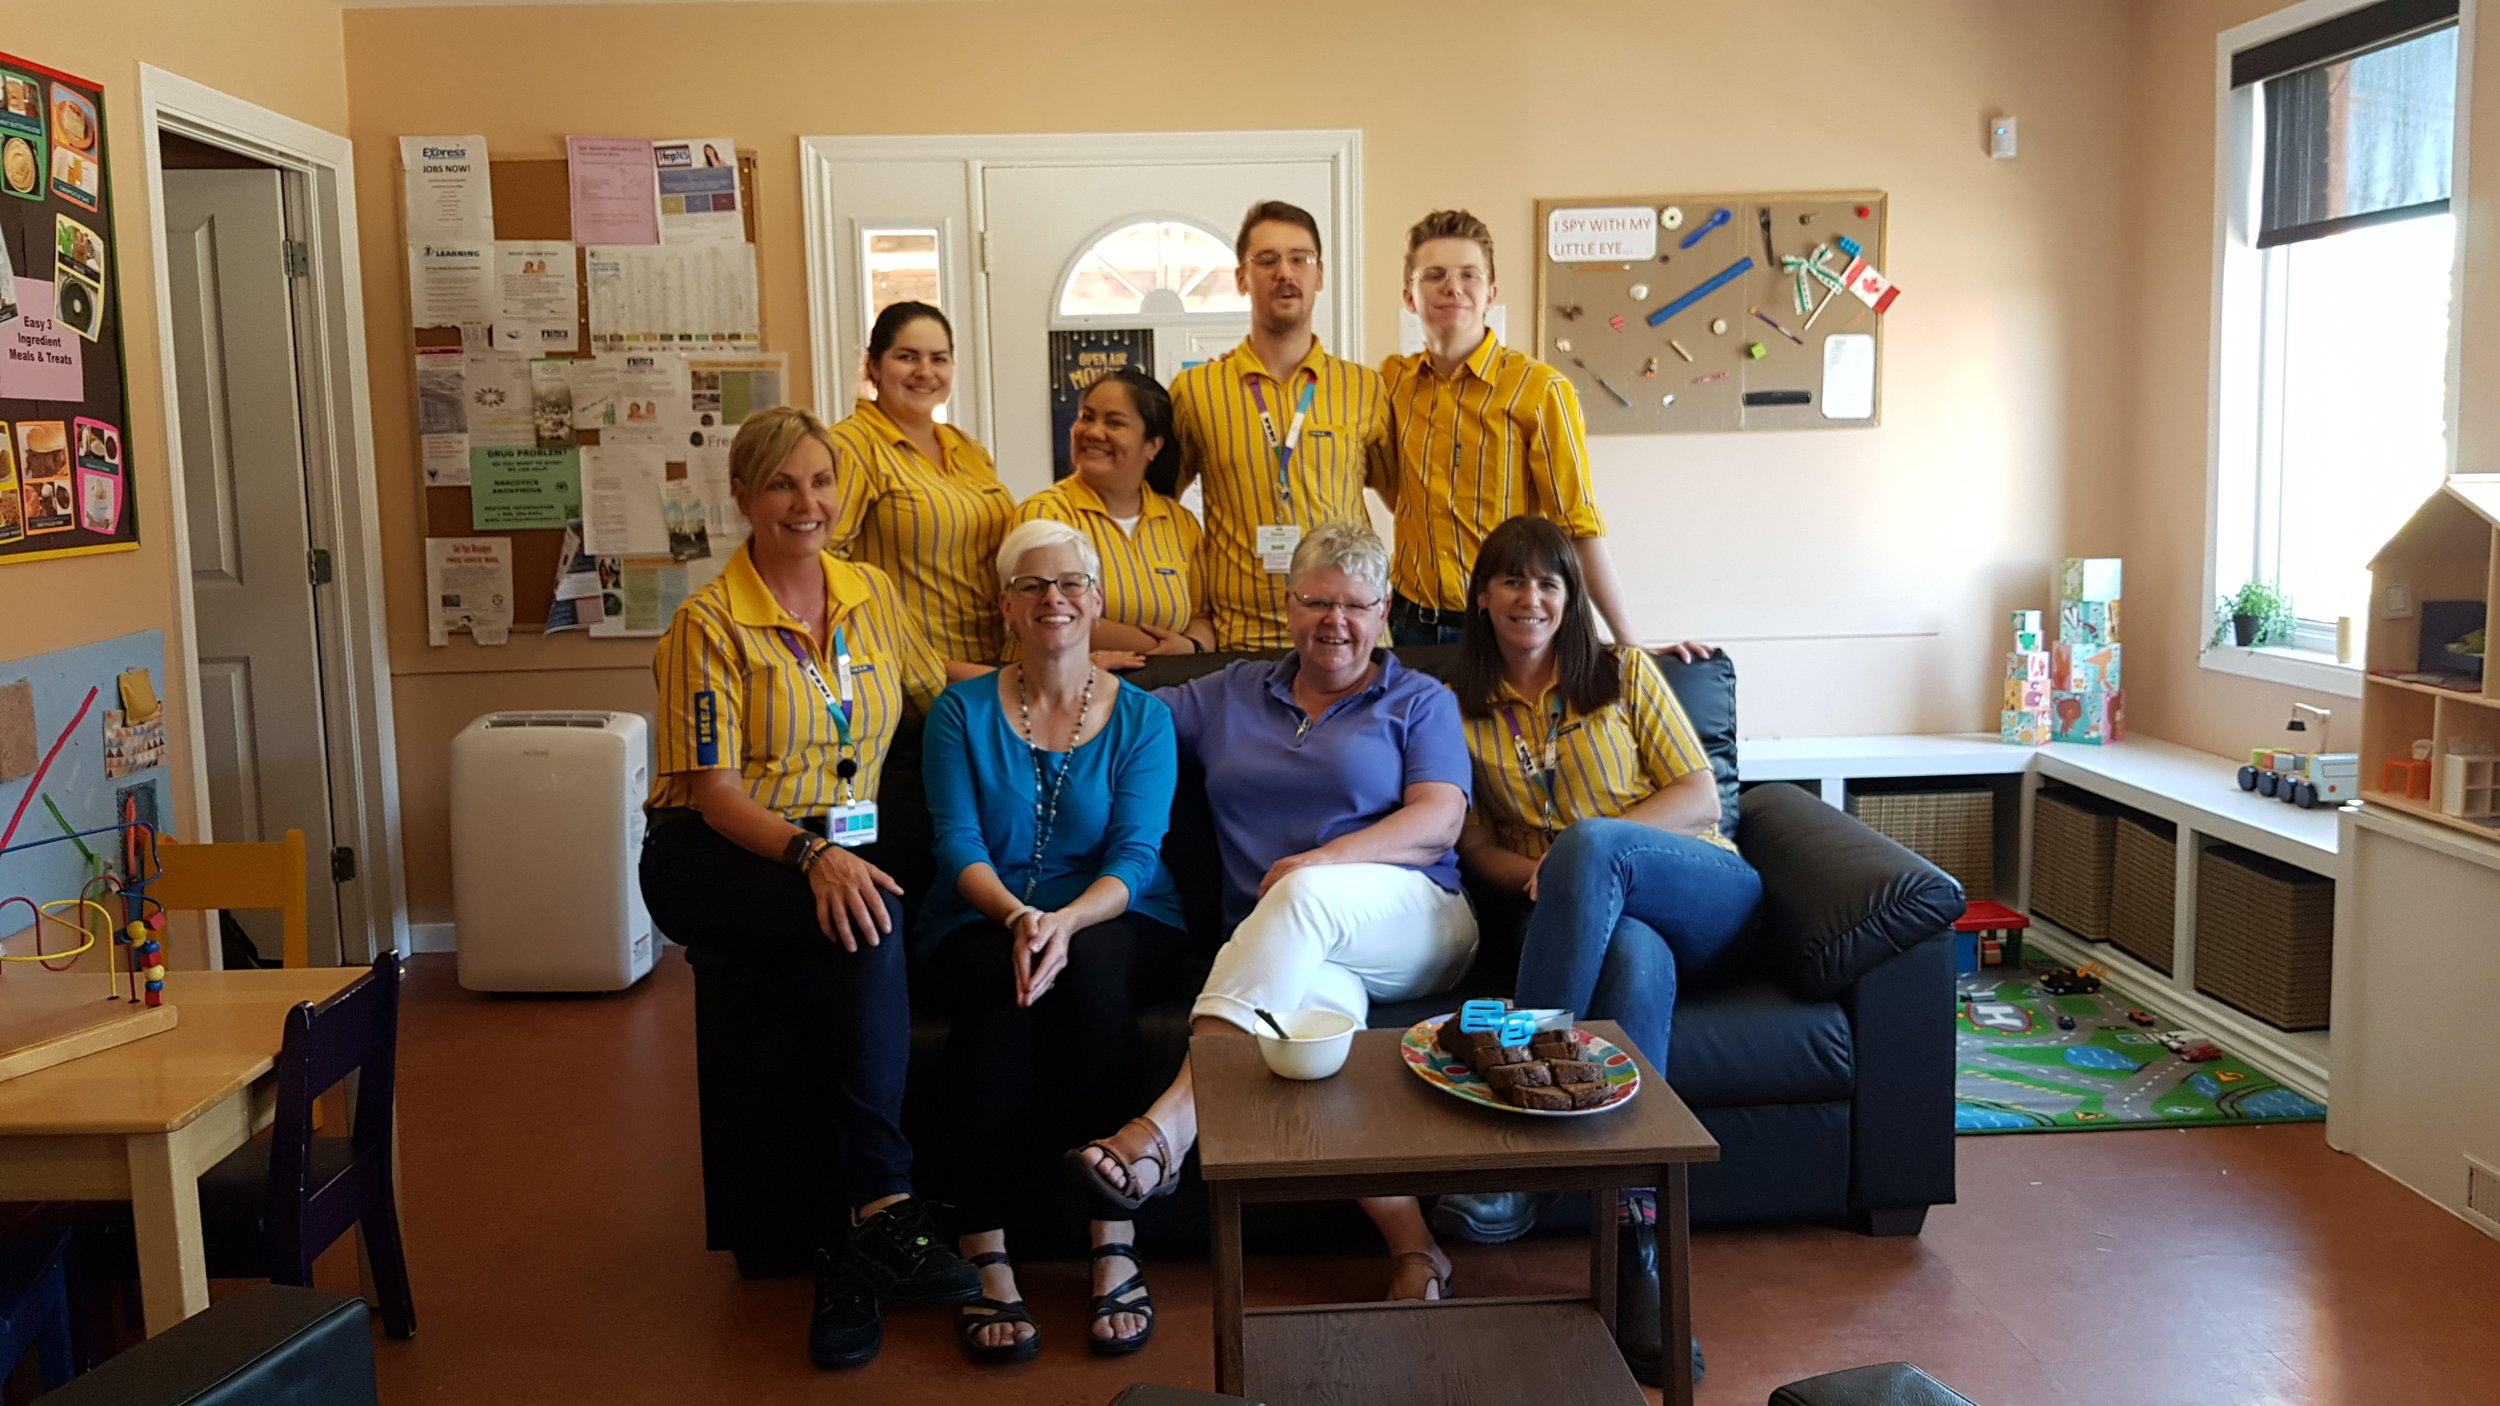 The IKEA team with our Director of Partnerships, Anne-Marie, and our Executive Director Wendy, all on our brand new couch! Thank you!